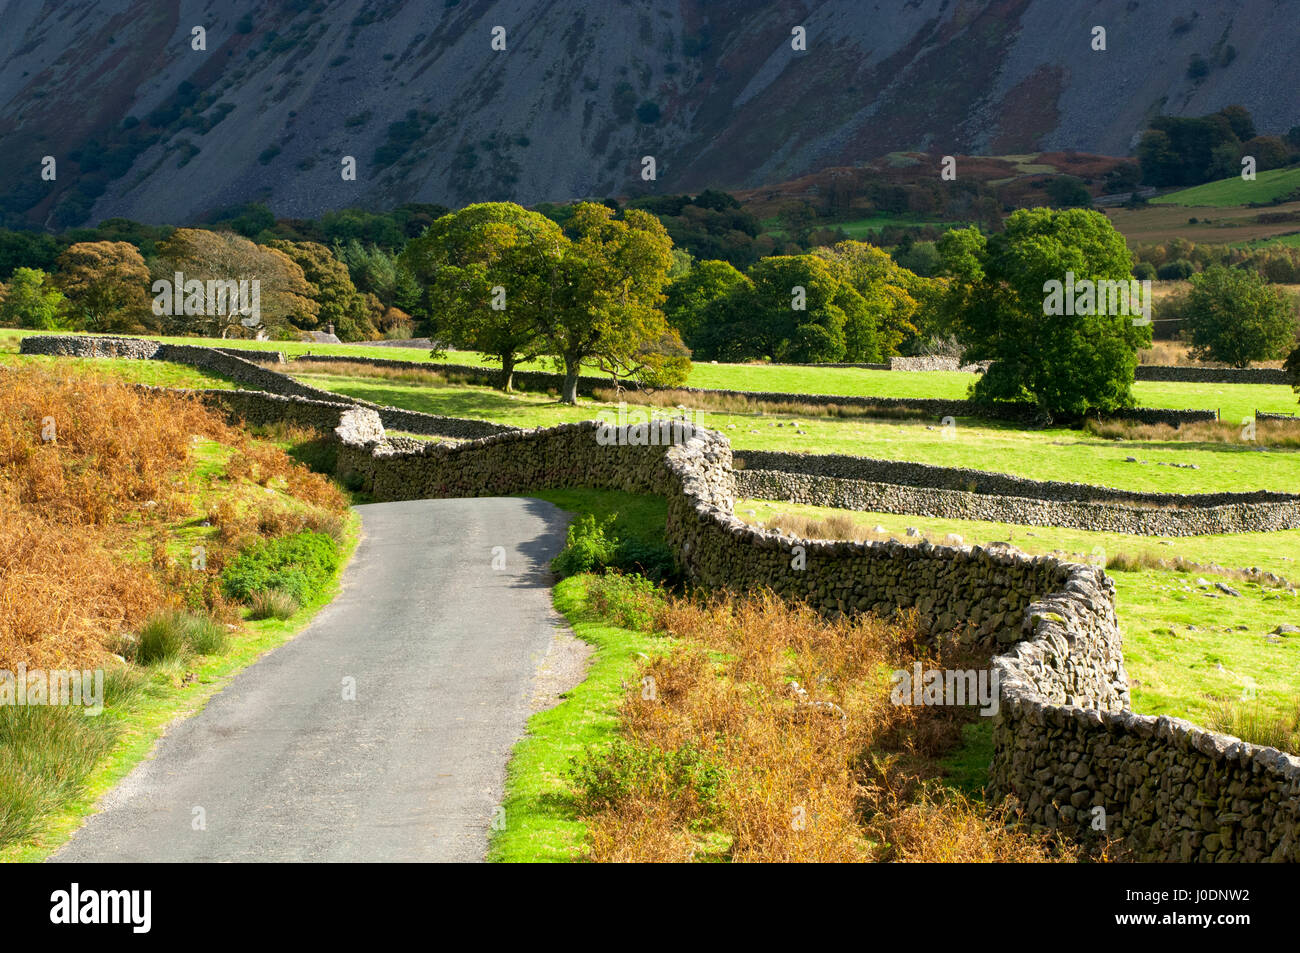 Rolling road and pastureland in the Lake District, Cumbria, England. - Stock Image